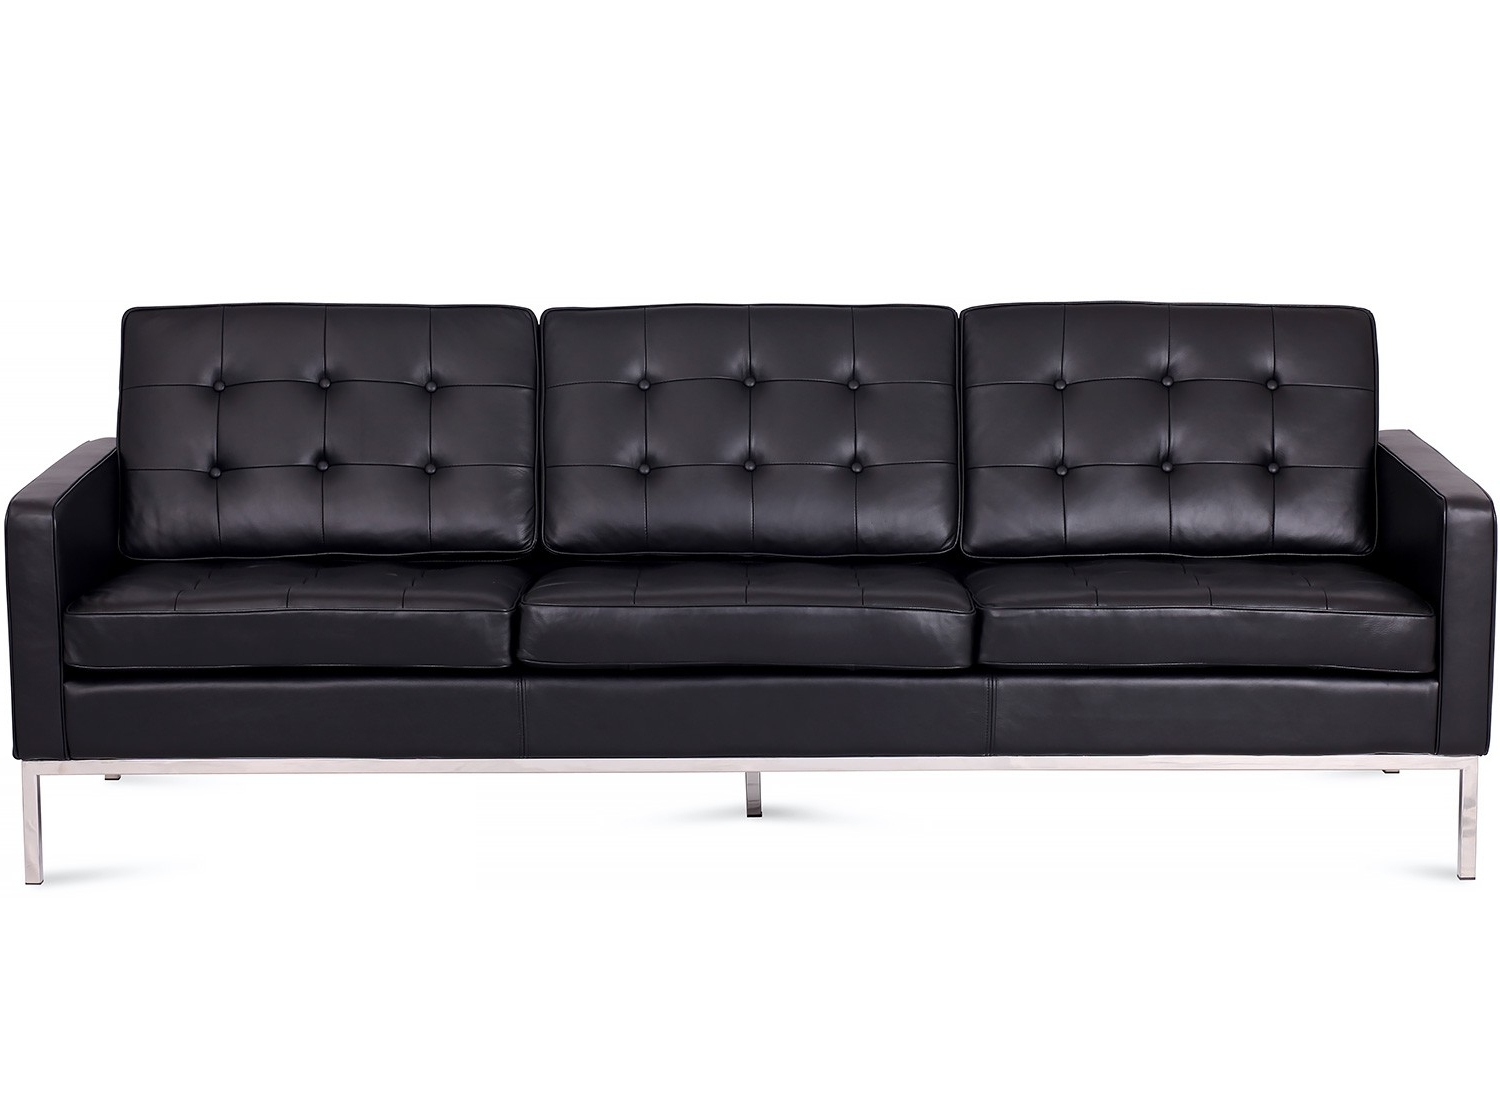 Well Liked Florence Knoll 3 Seater Sofas Inside Florence Knoll Sofa 3 Seater Leather (Platinum Replica) (View 5 of 20)